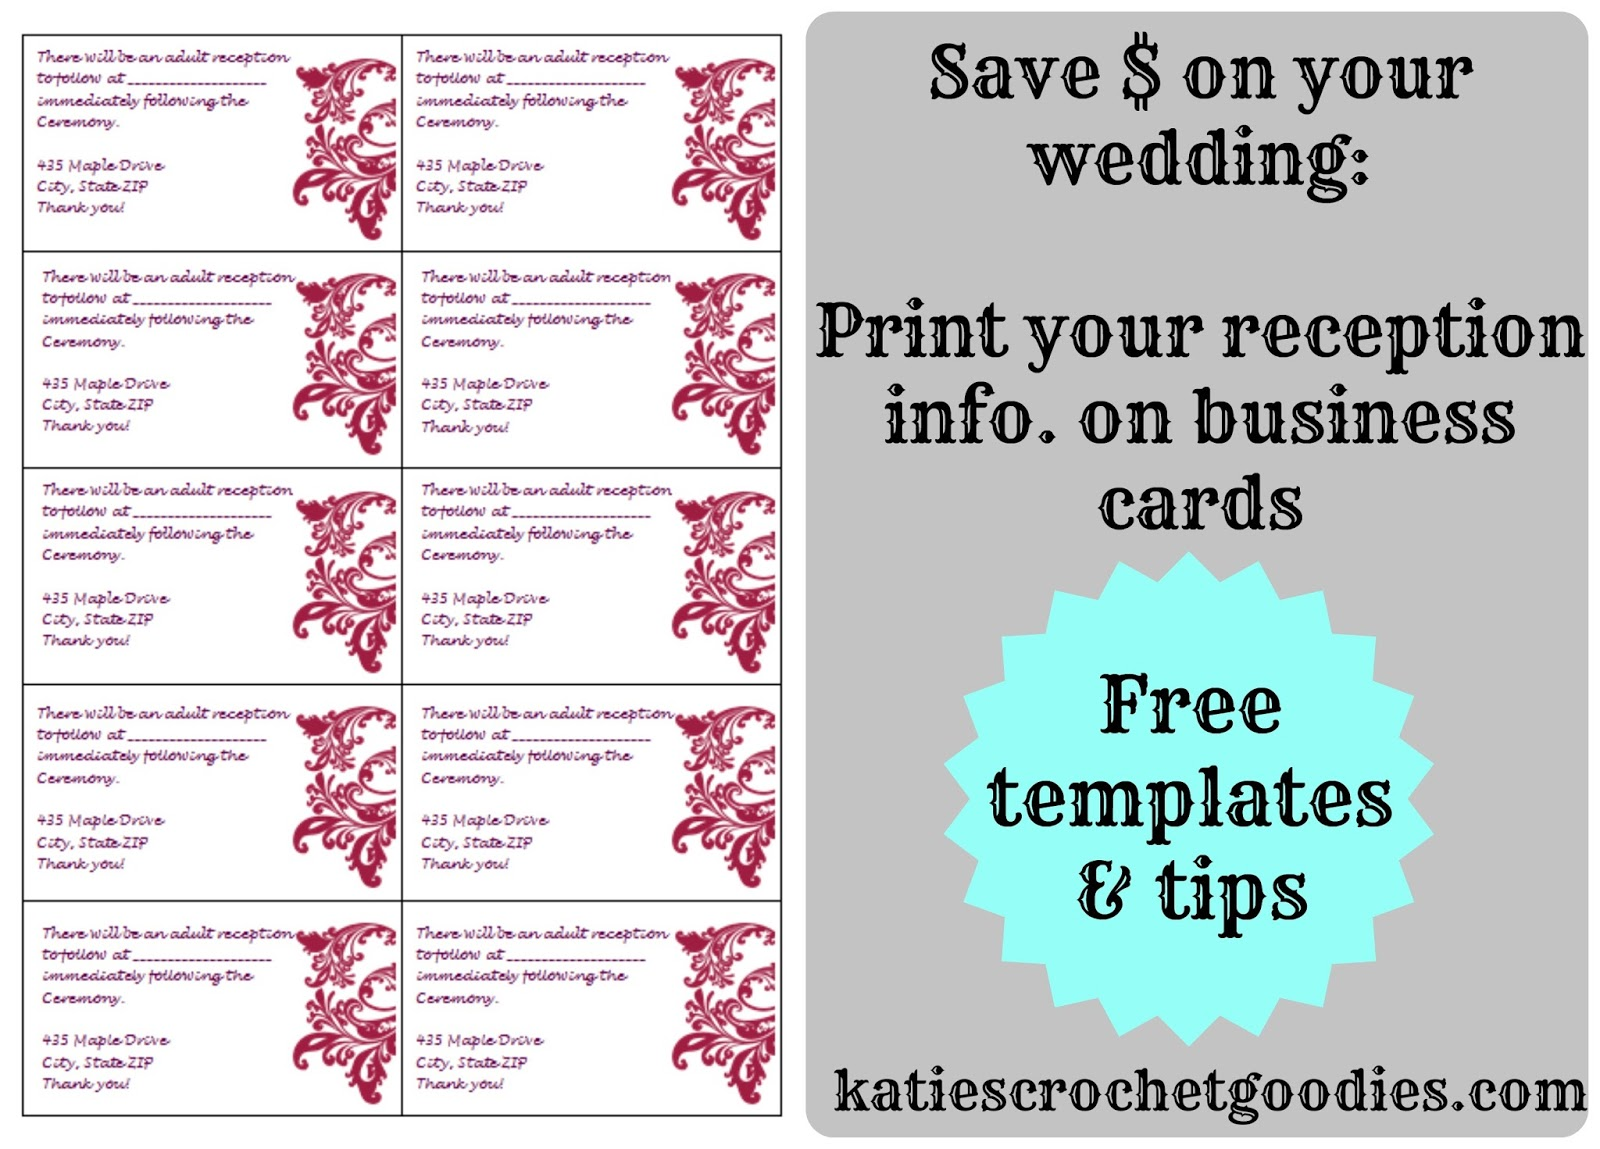 Free wedding templates rsvp reception cards katies crochet goodies free wedding reception card template colourmoves